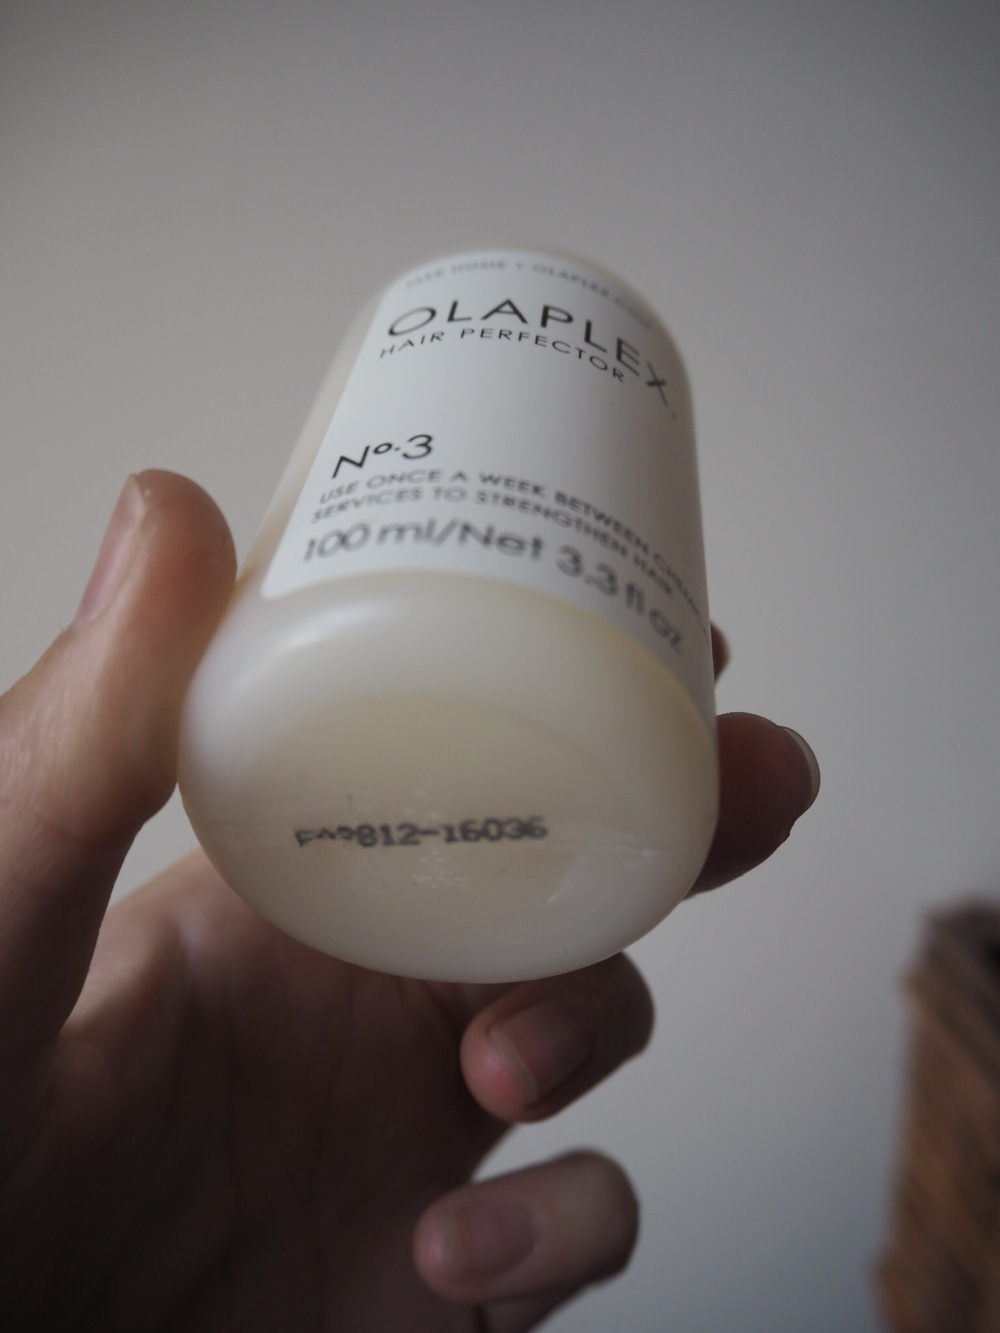 Olaplex No3 Curly hair amazon review- product bottle and serial number